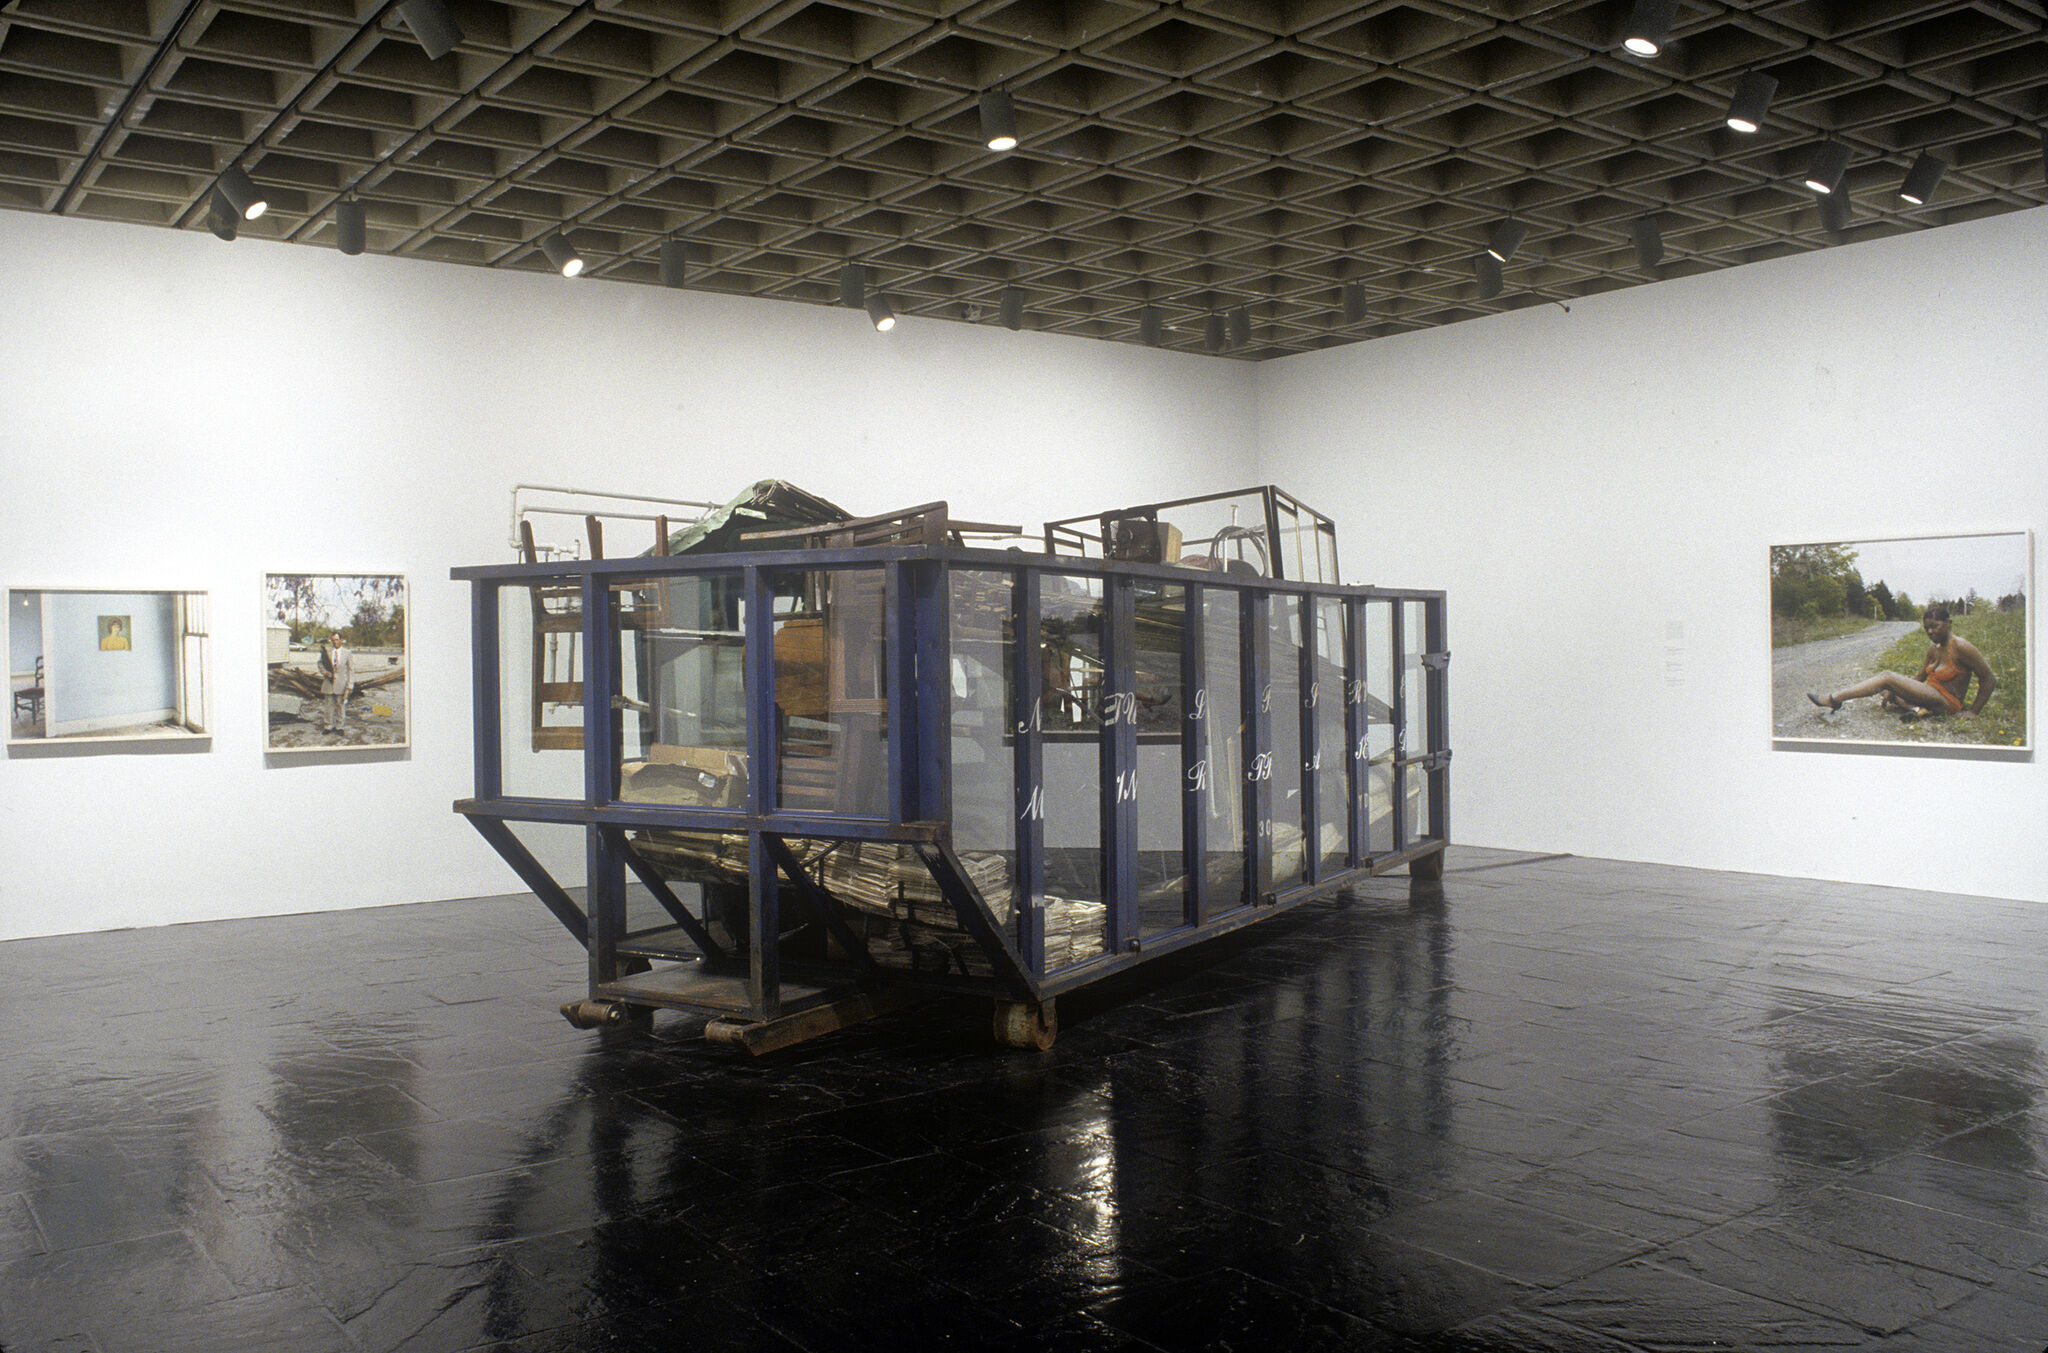 A gallery filled with photographs and a large sculpture of a glass dumpster filled with various objects.